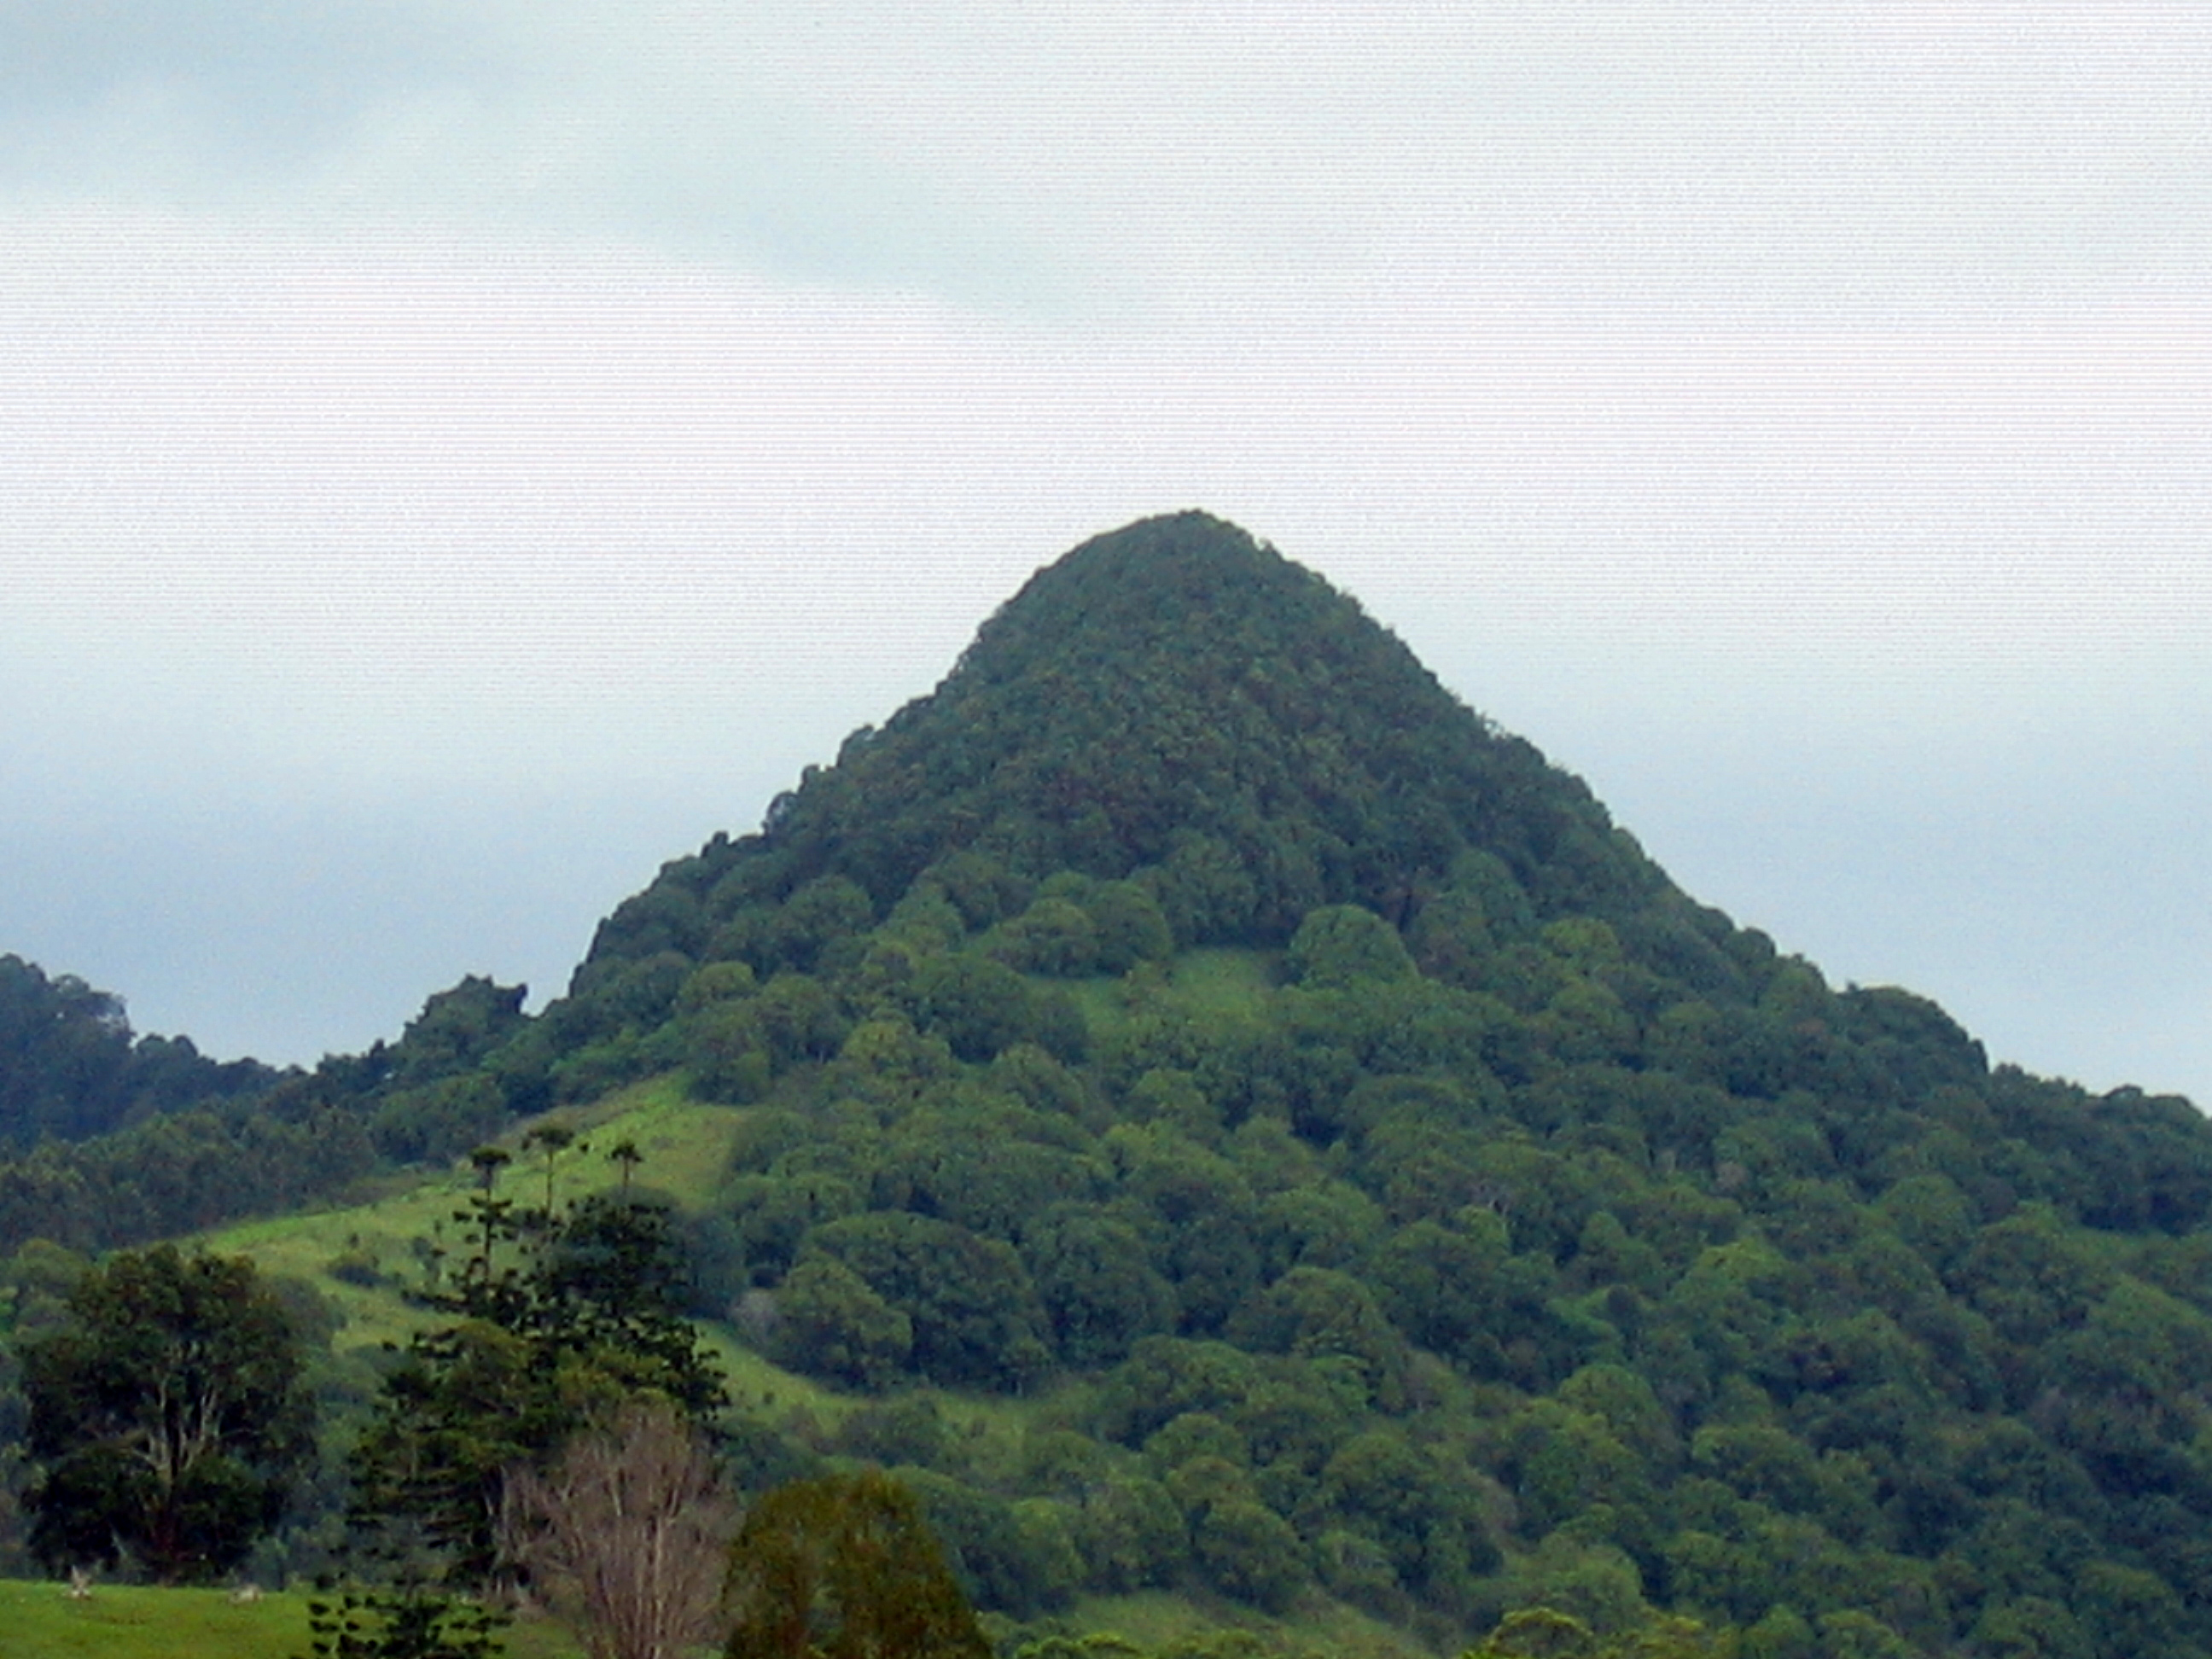 Mullumbimby Australia  City new picture : Mullumbimby New South Wales Wikipedia, the free ...